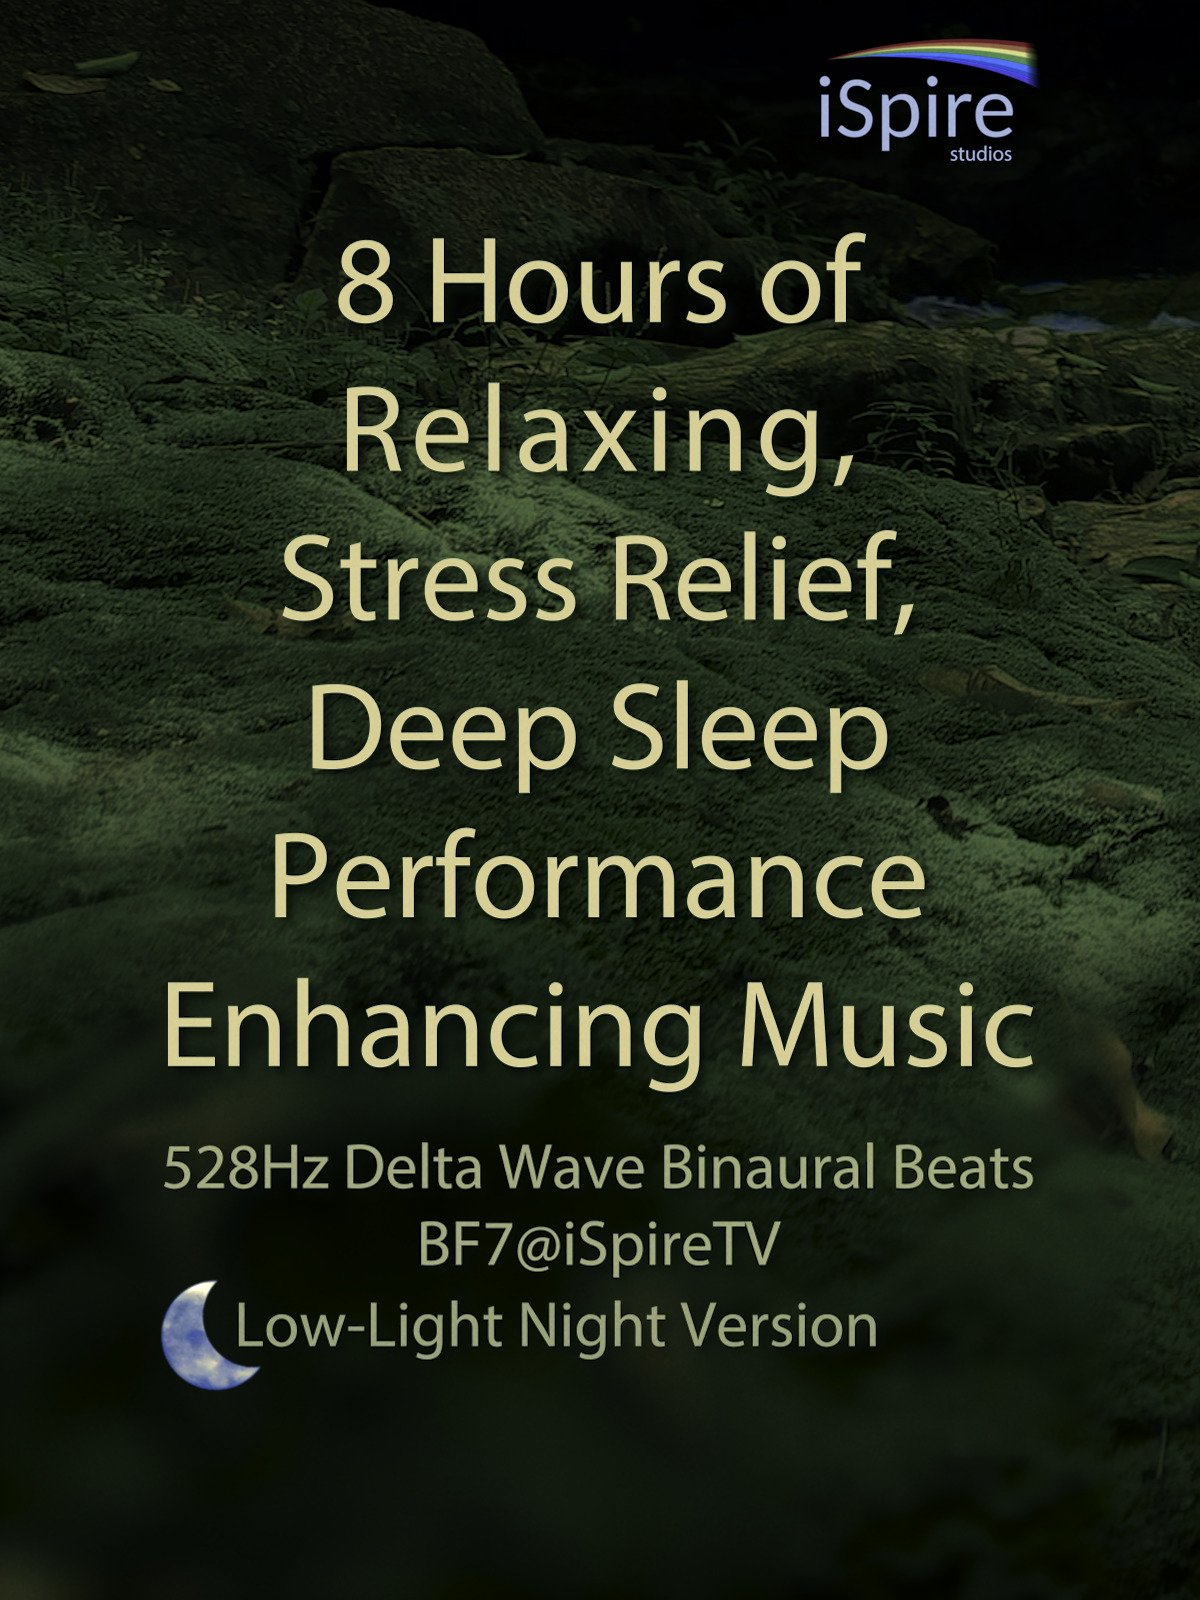 8 Hours of Relaxing, Stress Relief, Deep Sleep Performance Enhancing Music (Low-Light Night Version)